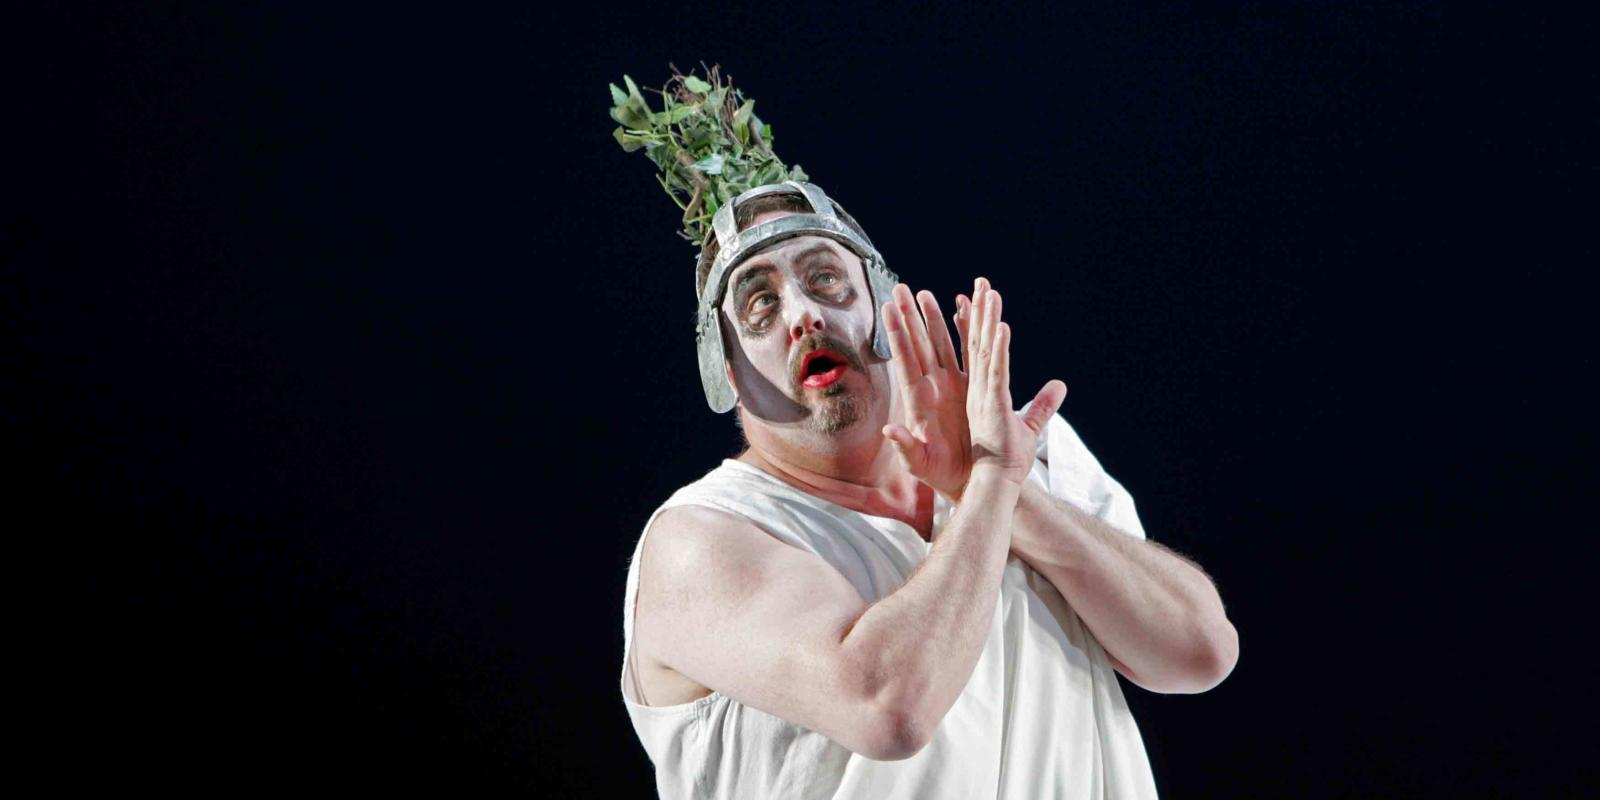 An image of Peter Rose in ENO's 2004 production of A Midsummer Night's Dream